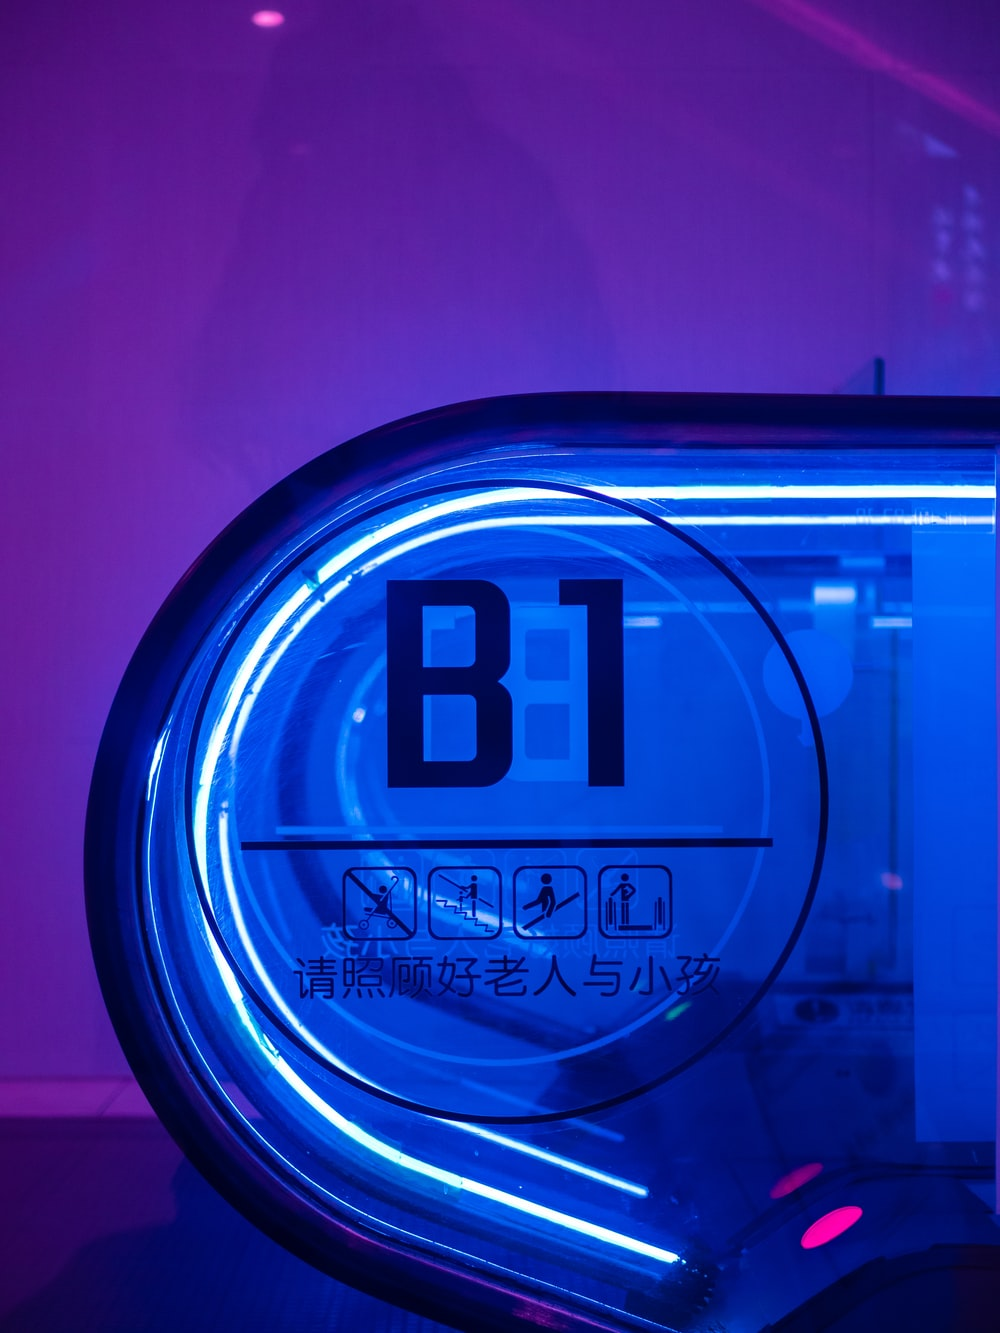 blue and white round digital clock at 12 00